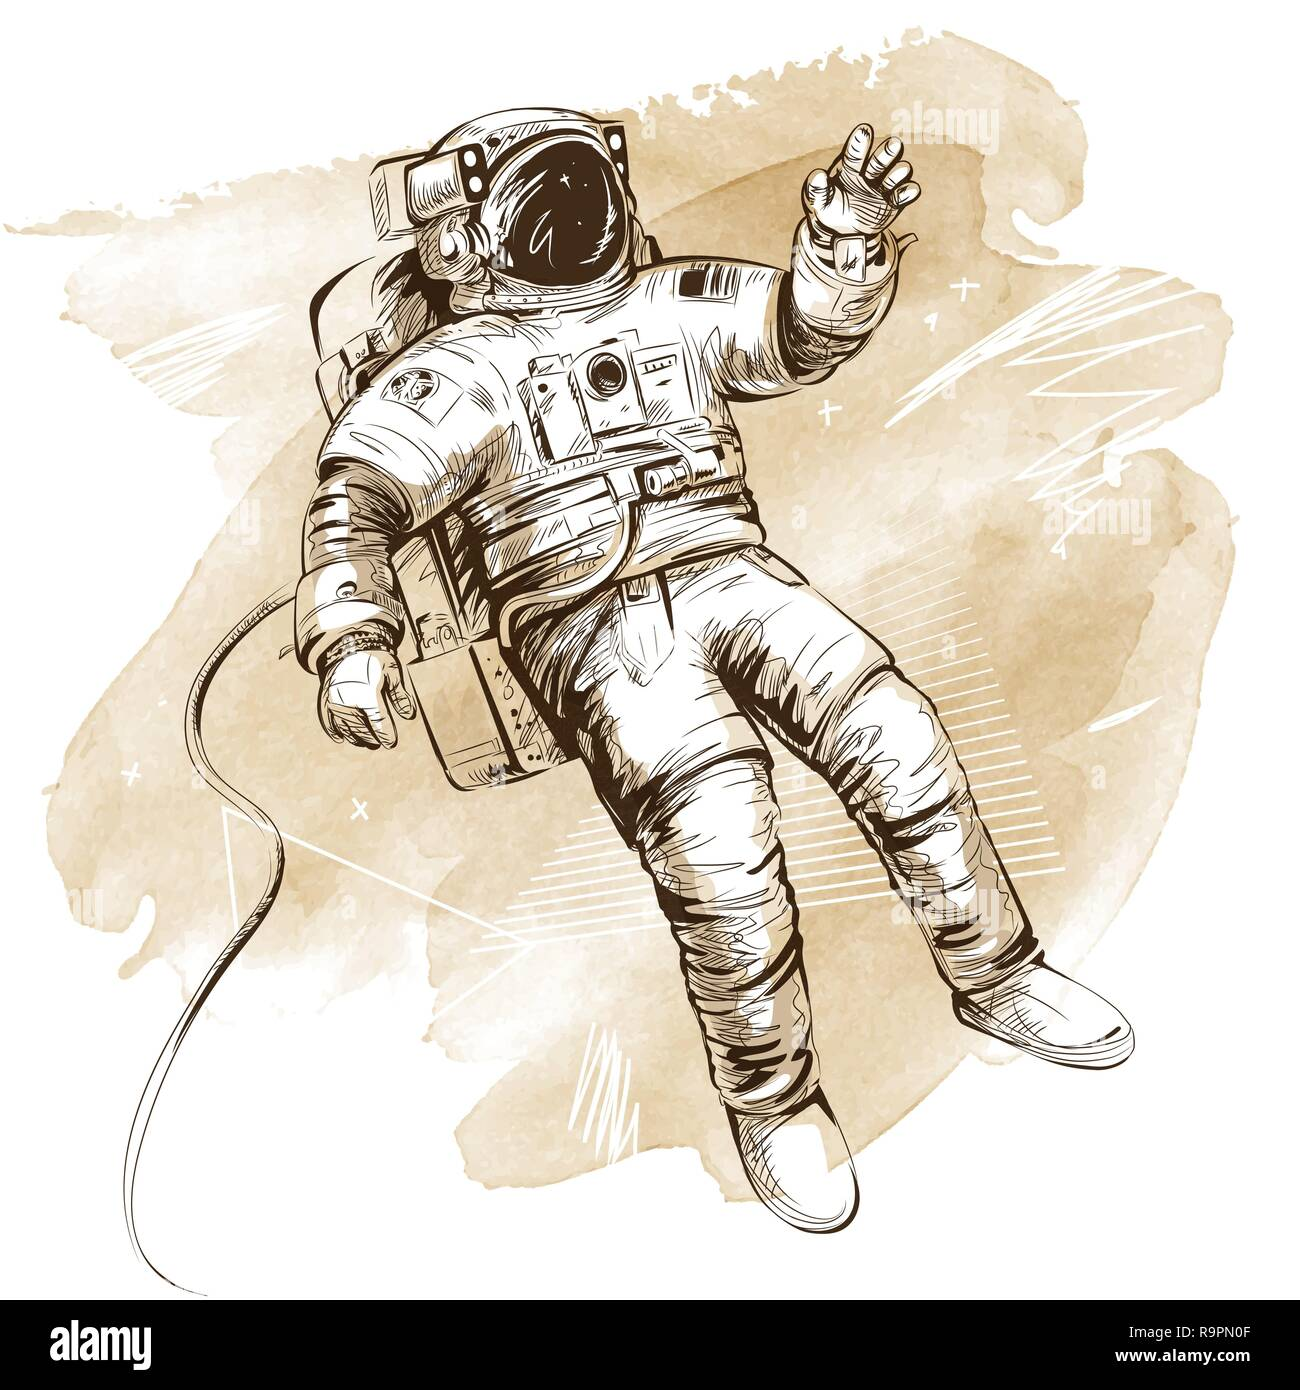 Cosmonaut or astronaut in spacesuit. Hand drawn vector illustration on artistic watercolor background. All elements isolated. - Stock Image